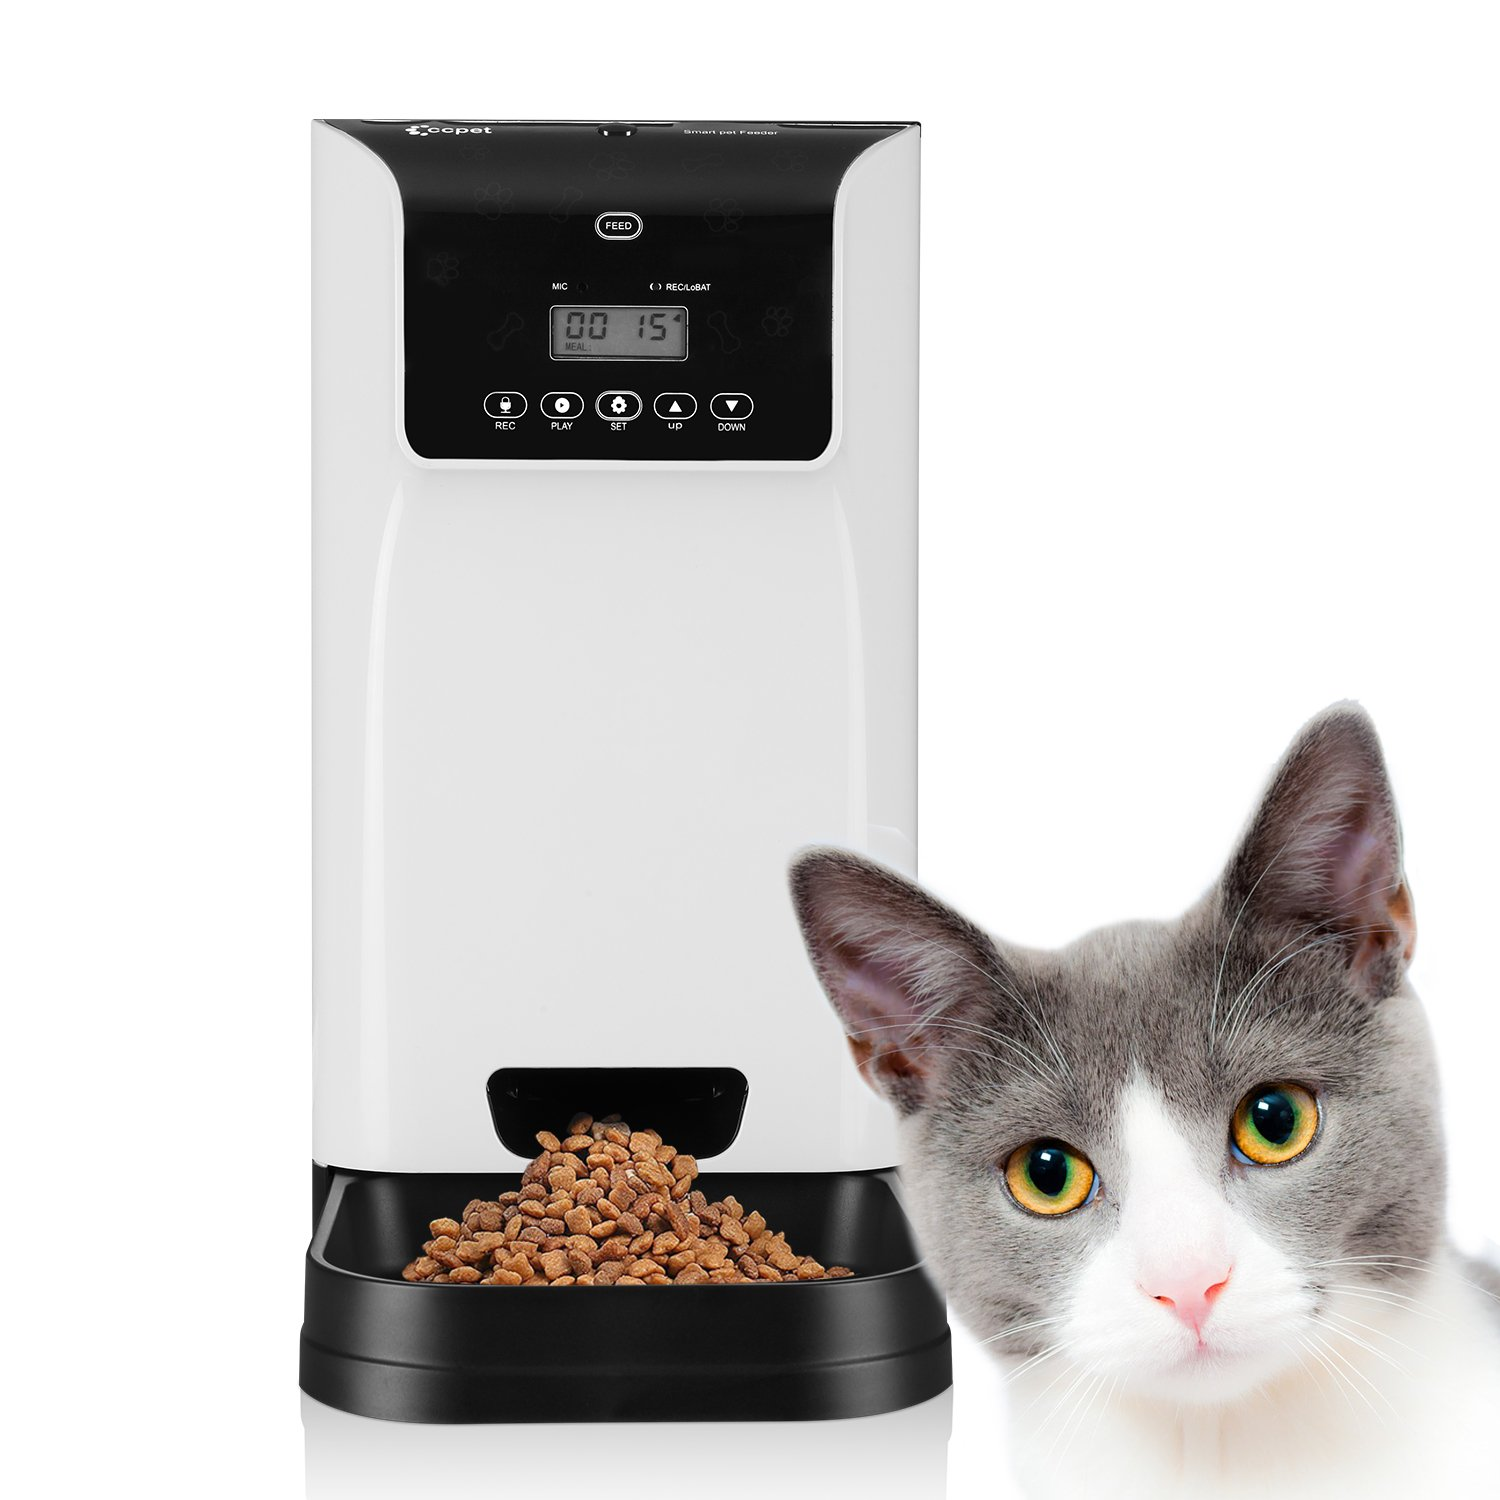 Petera Smart Feeder, Automatic Pet Feeder for Dog and Cat,6L large volume, Digital Clock,LCD Screen Diplay and Sound Recording